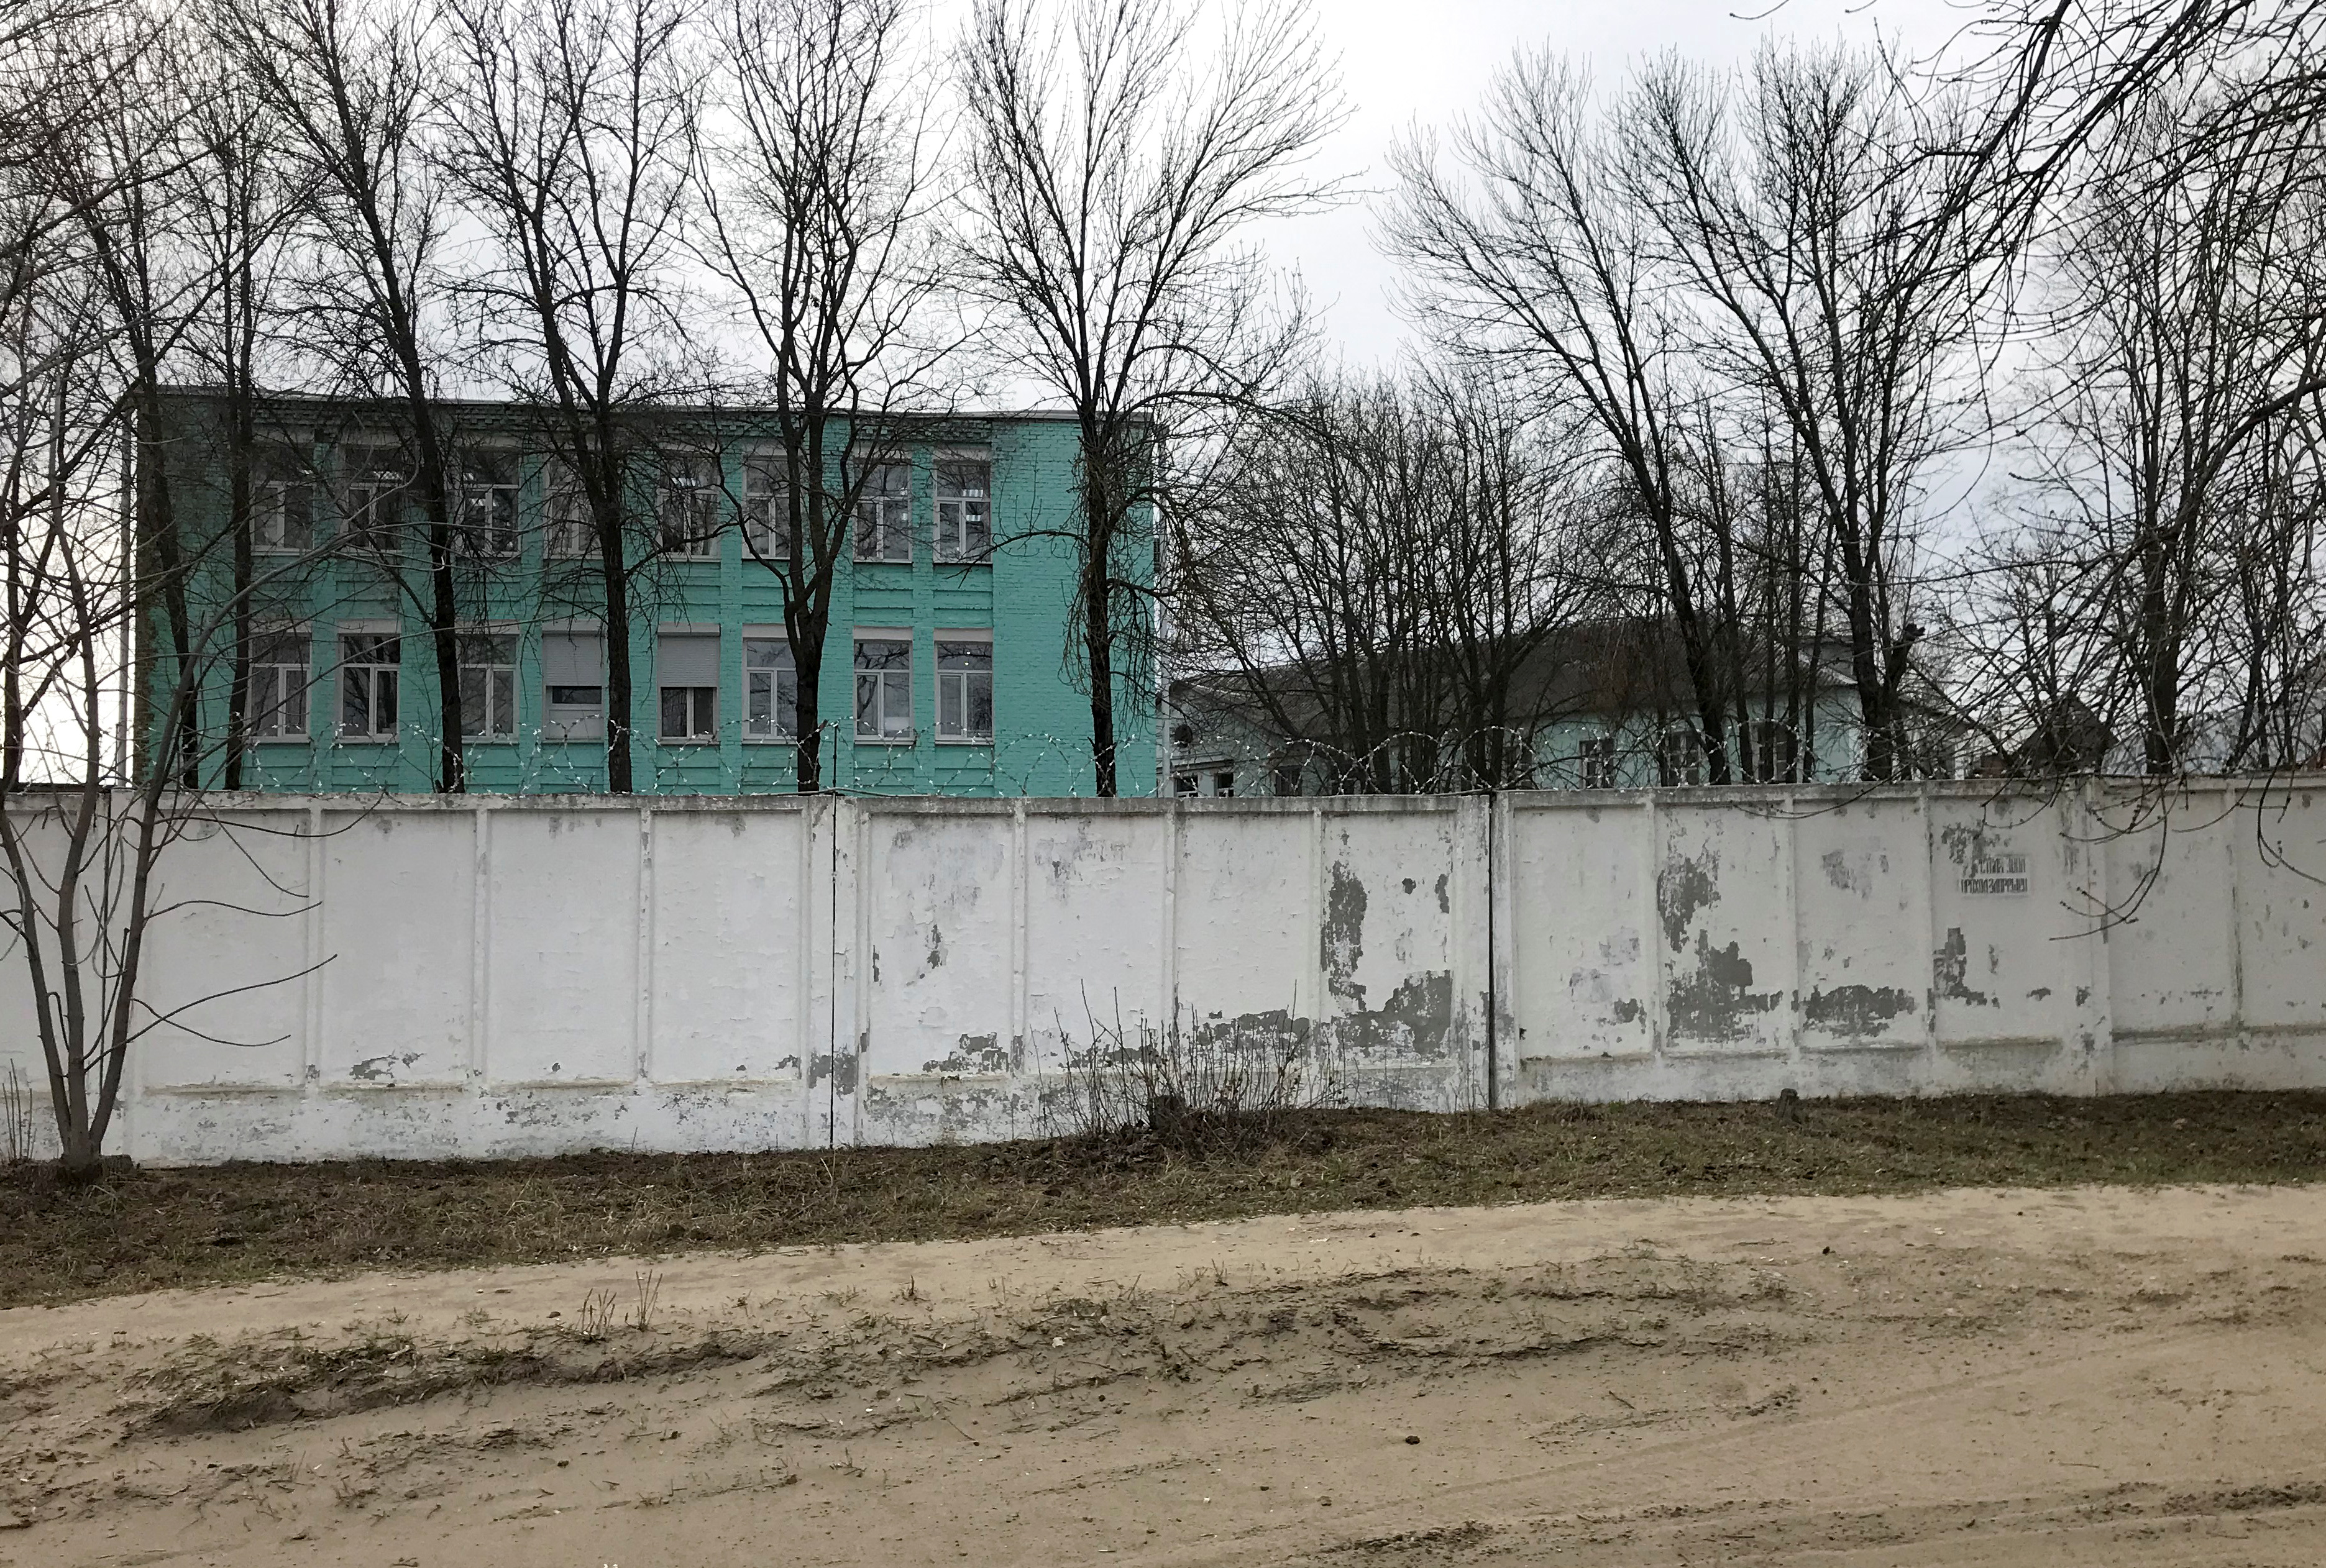 An exterior view shows the IK-3 penal colony, which houses a hospital where jailed Kremlin critic Alexei Navalny was reportedly transferred, in Vladimir, Russia April 19, 2021. Alexei Liptser, a lawyer for Navalny, said the hunger-striking opposition politician was earlier transferred to a prison hospital at a penal colony in the town of Vladimir following a decision by authorities. REUTERS/Alexander Reshetnikov